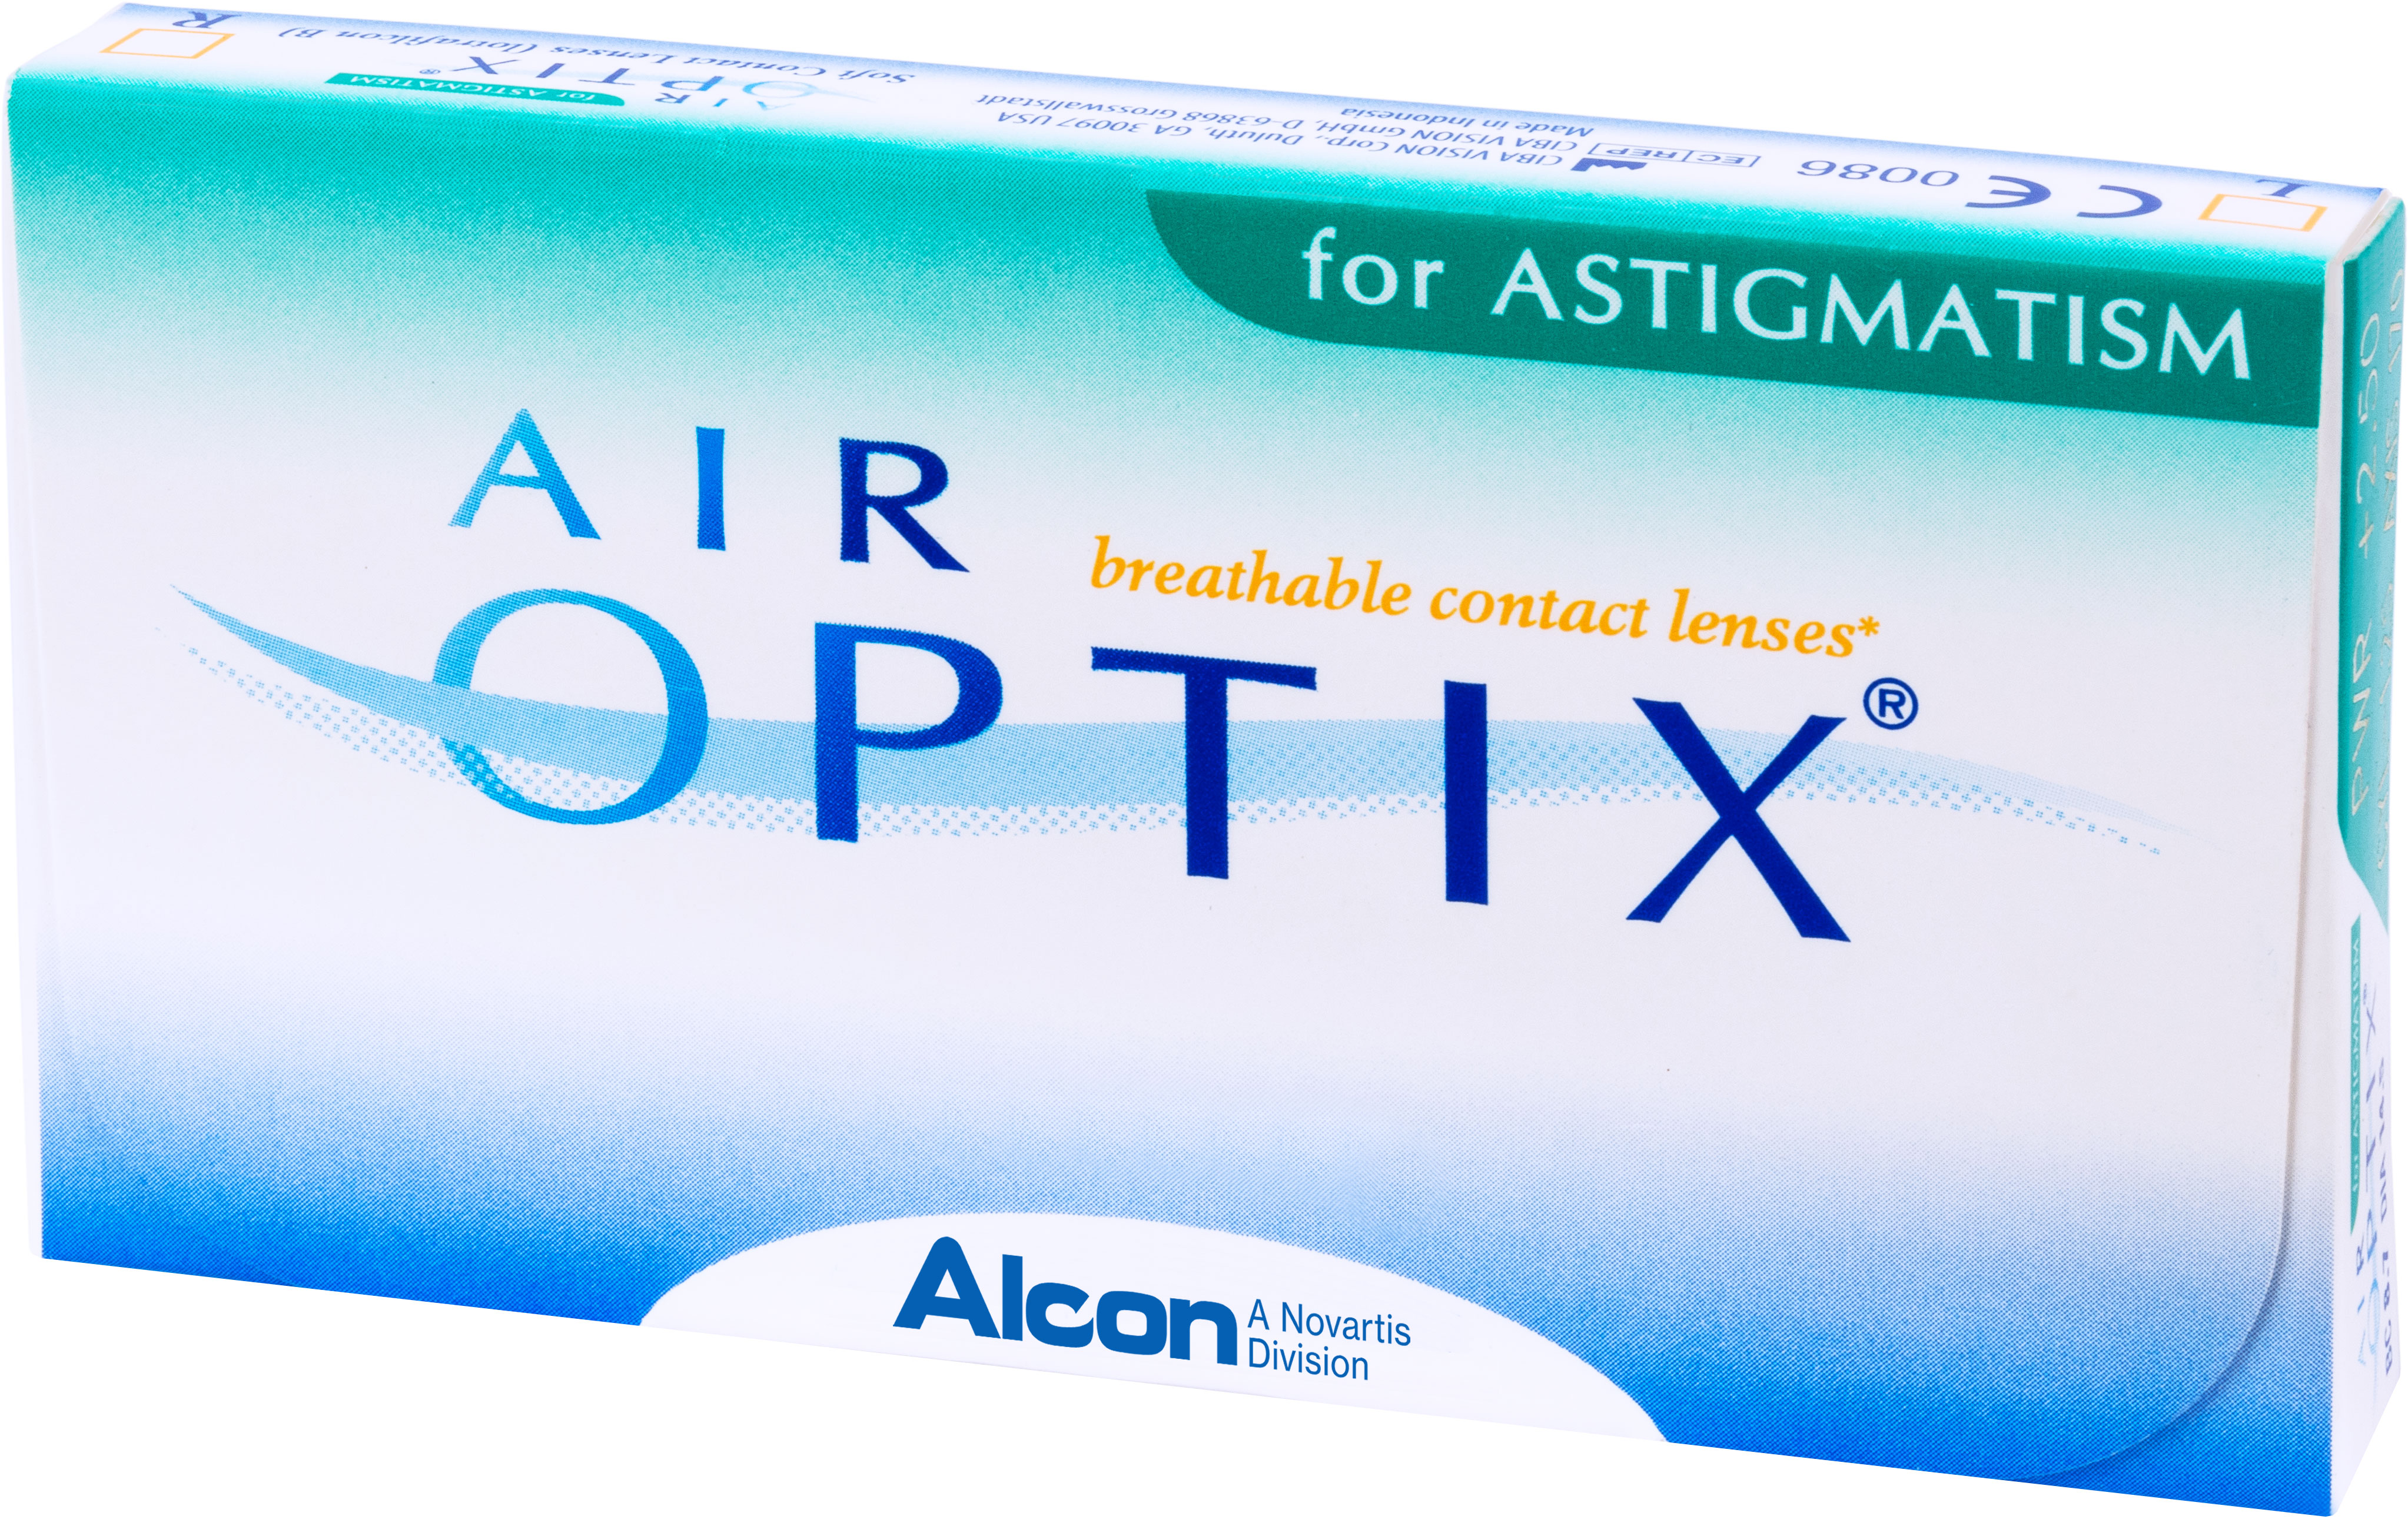 Аlcon контактные линзы Air Optix for Astigmatism 3pk /BC 8.7/DIA14.5/PWR -4.00/CYL -0.75/AXIS 70100019839